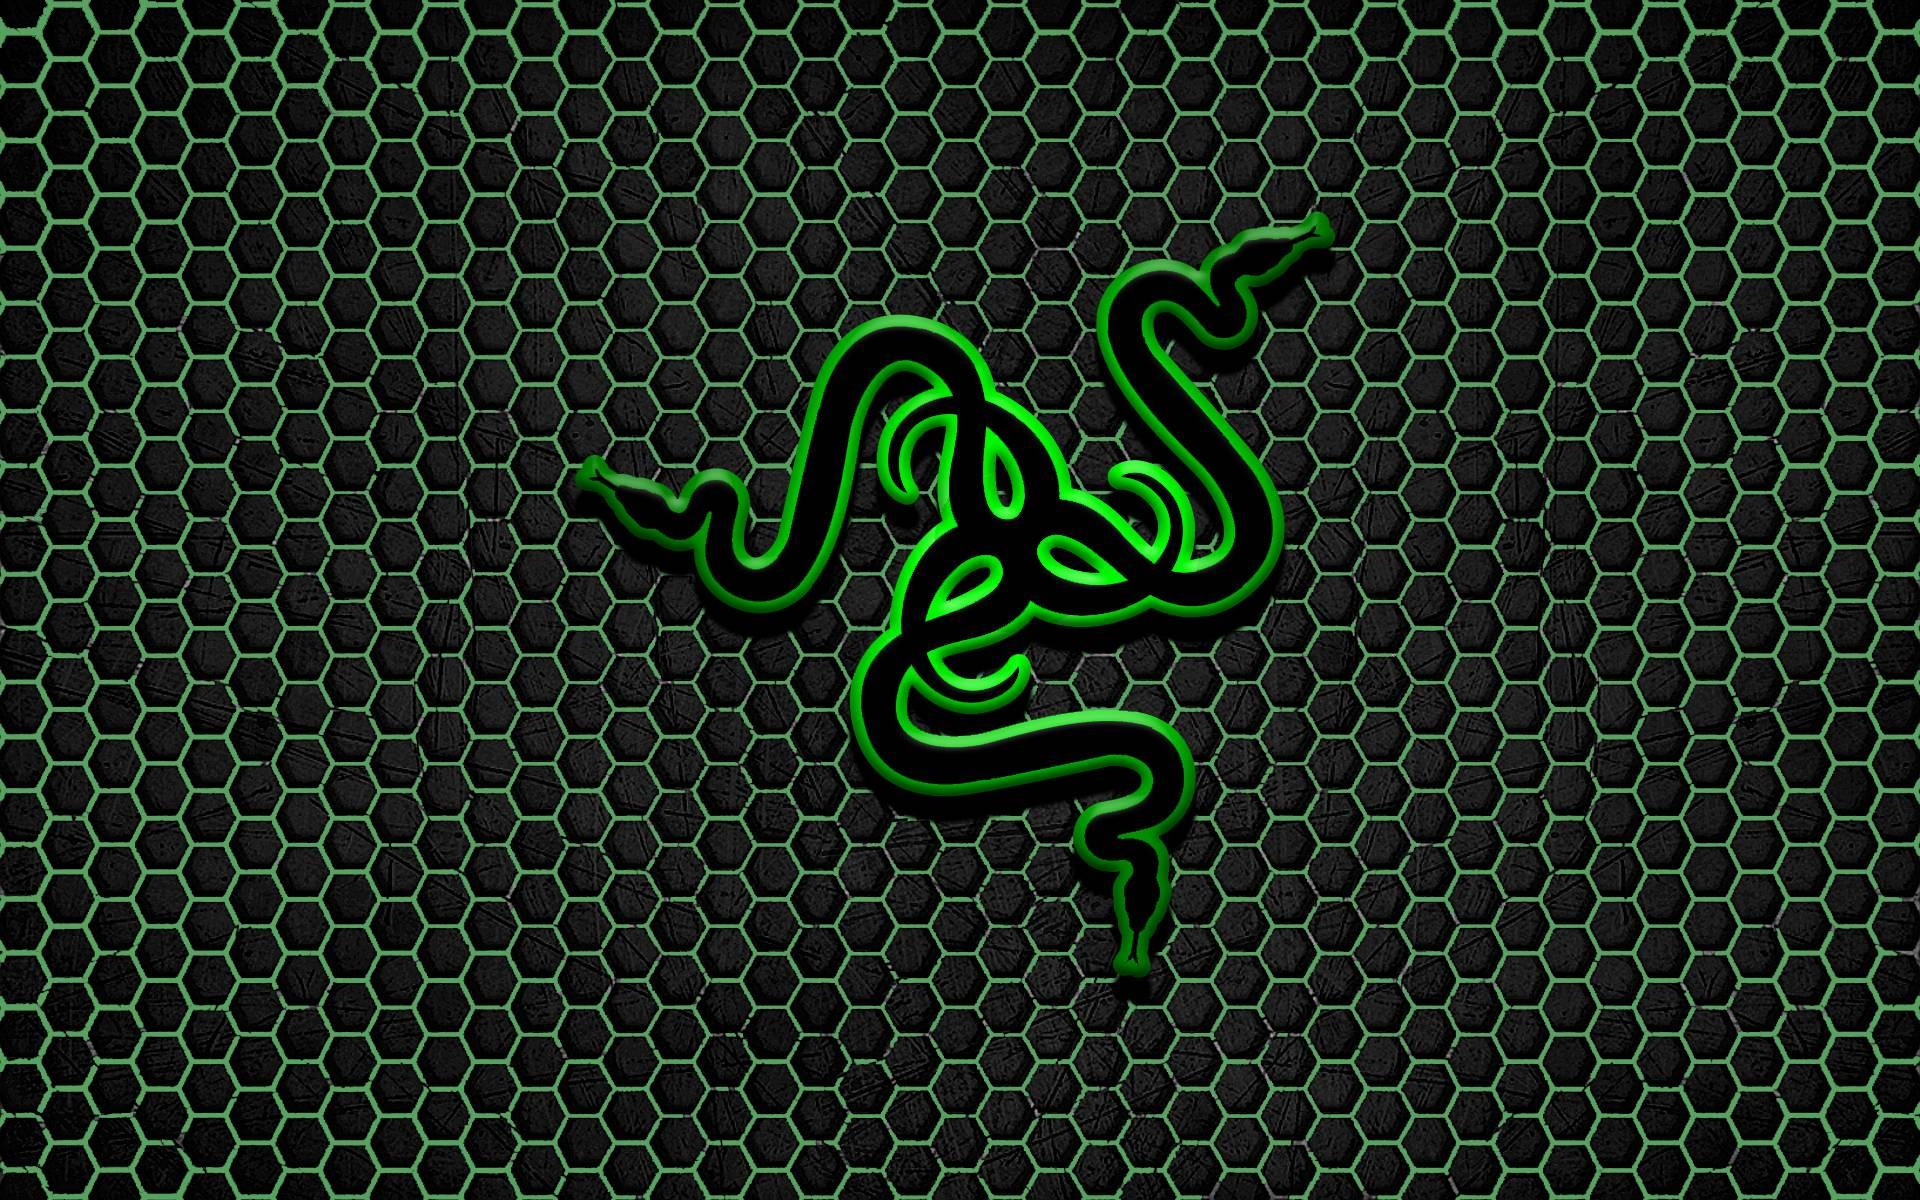 Razer wallpapers hd wallpaper cave for Wallpapers 3d animados para pc